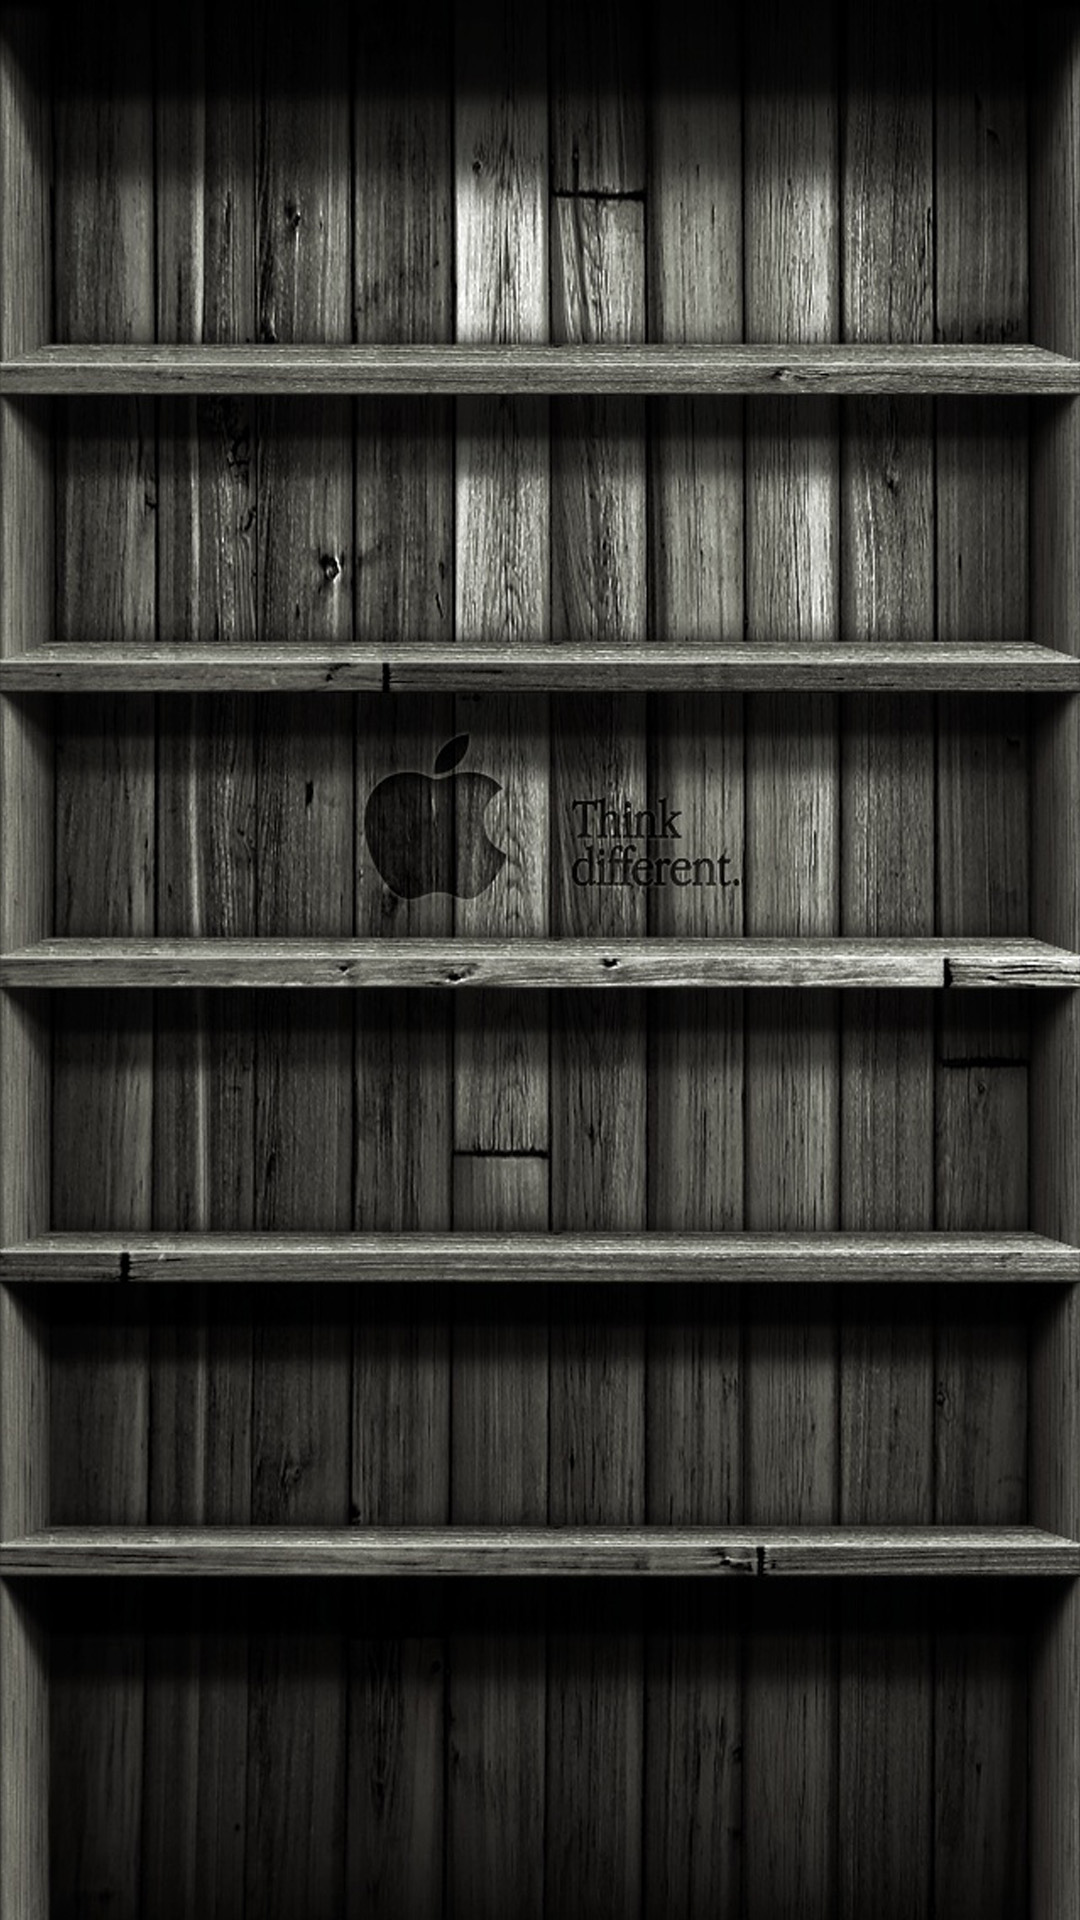 Shelf iPhone 6 Plus Wallpaper 145 iPhone 6 Plus Wallpapers HD 1080x1920